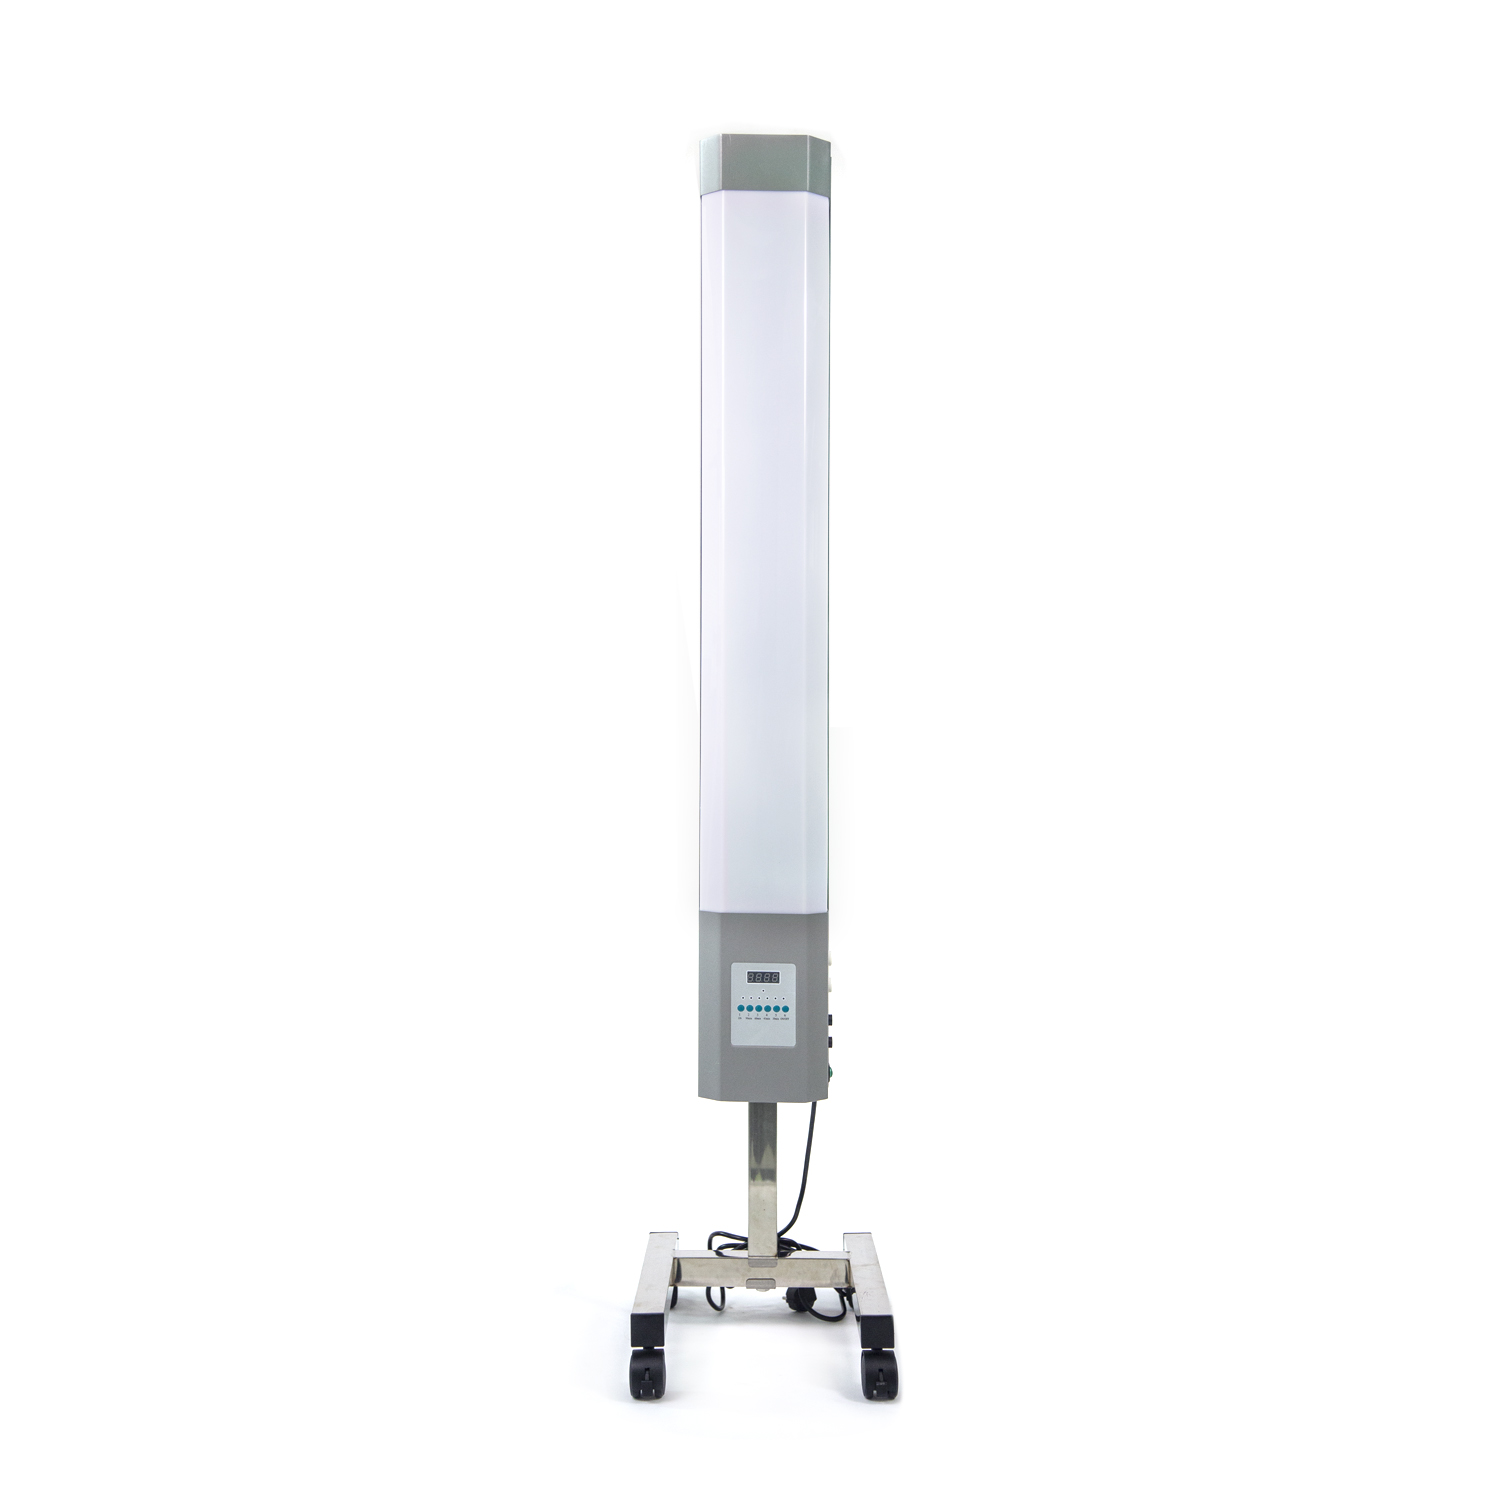 High Efficient 30W 220V Disinfection UV lamp for Office Home Hotel Room Cleaning